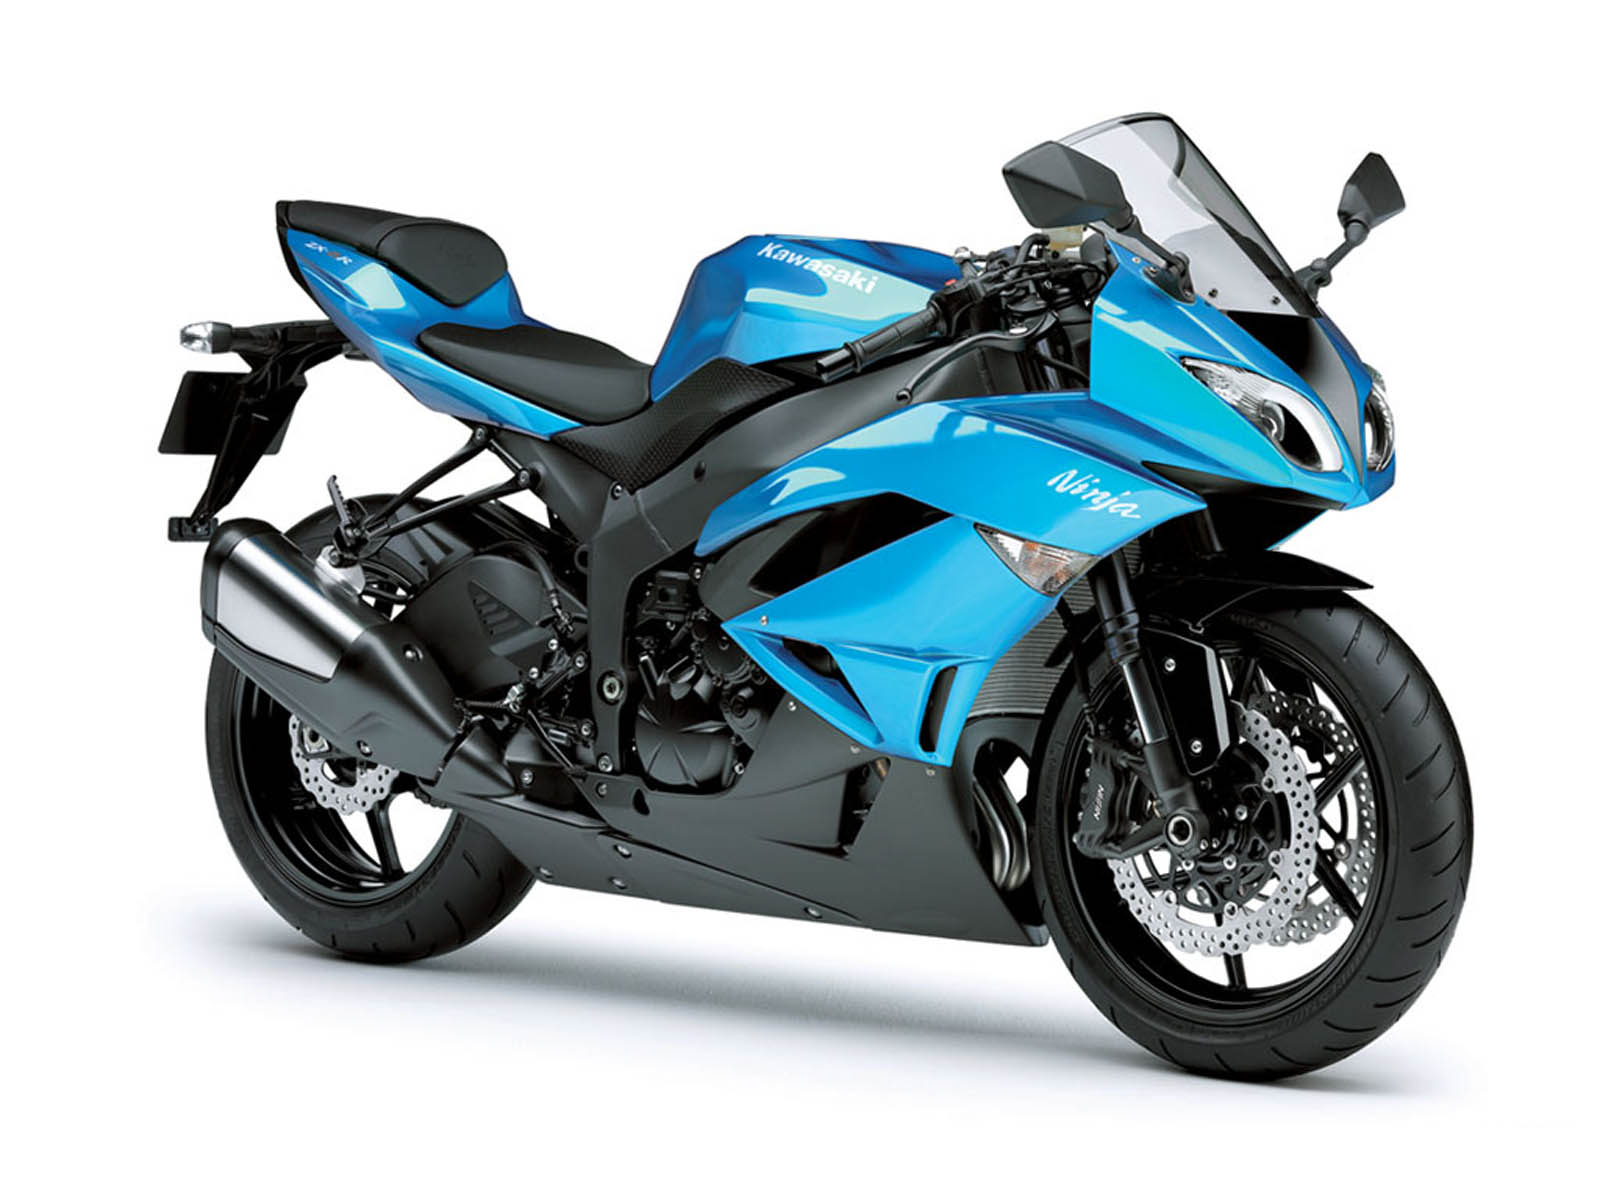 Kawasaki Ninja ZX 6R Wallpaper Kawasaki Motorcycles  - kawasaki ninja zx 6r blue wallpapers